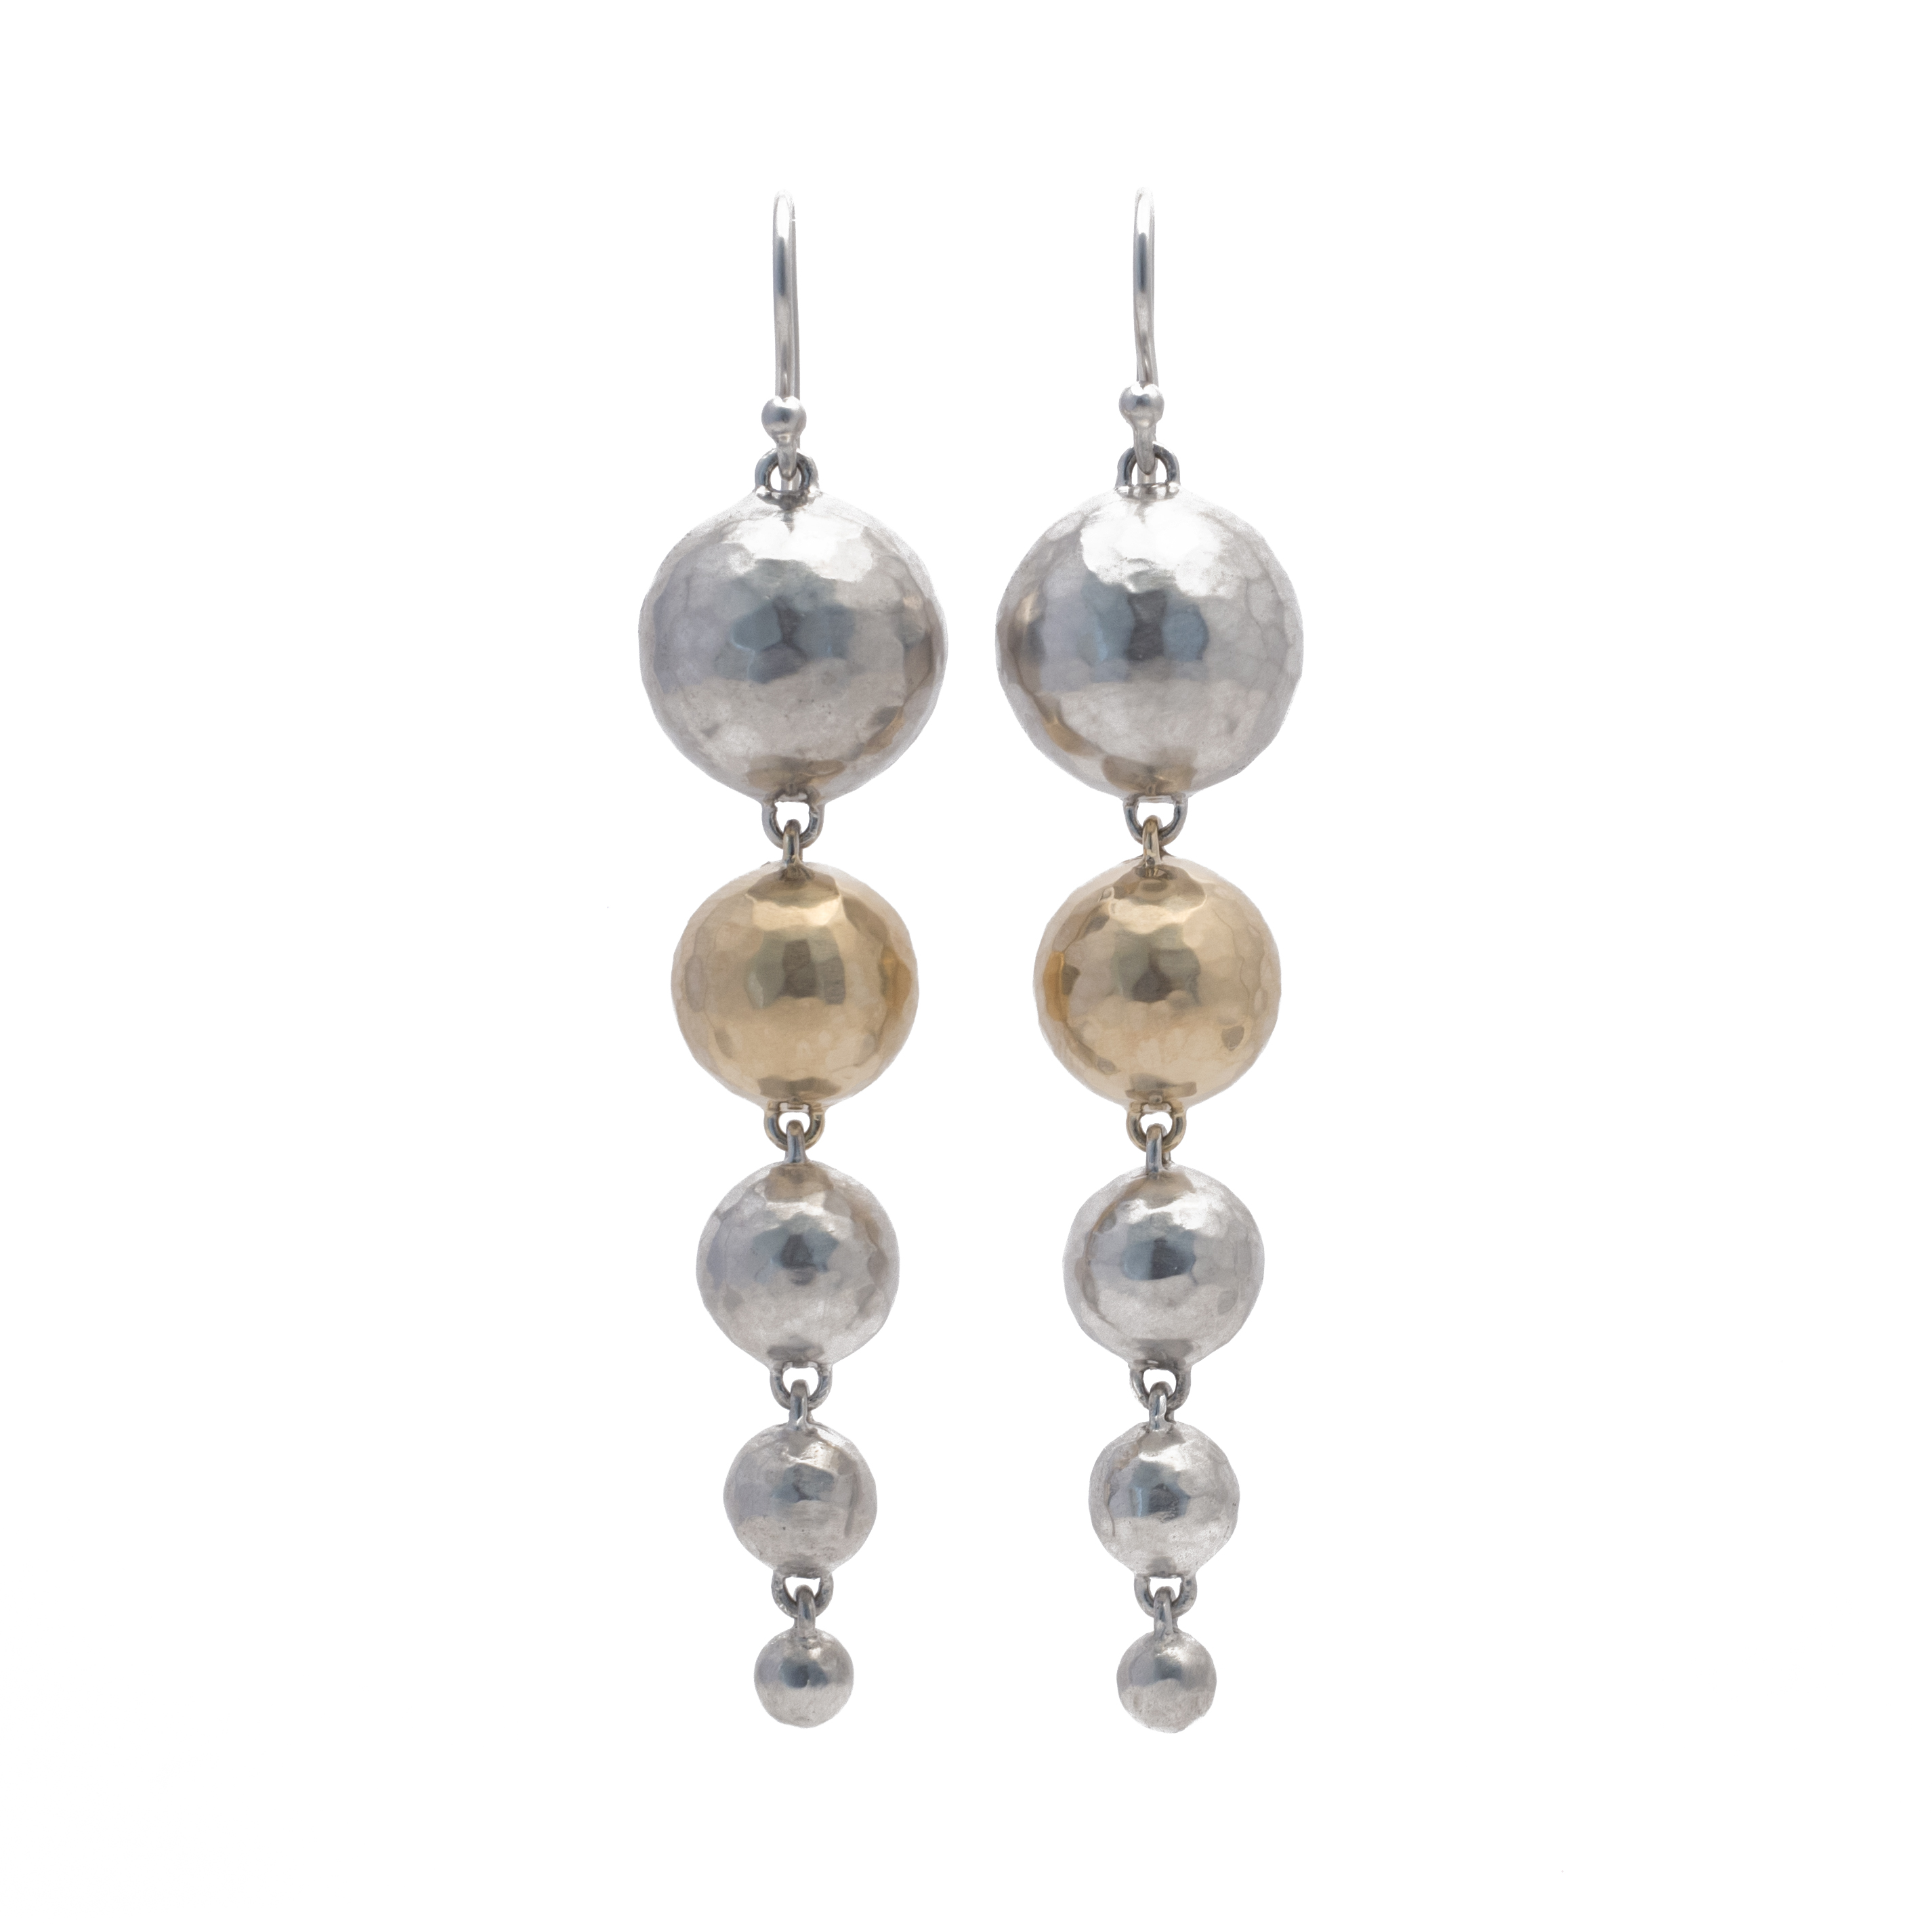 130057-14K-925 gold silver inverted avalanche earrings